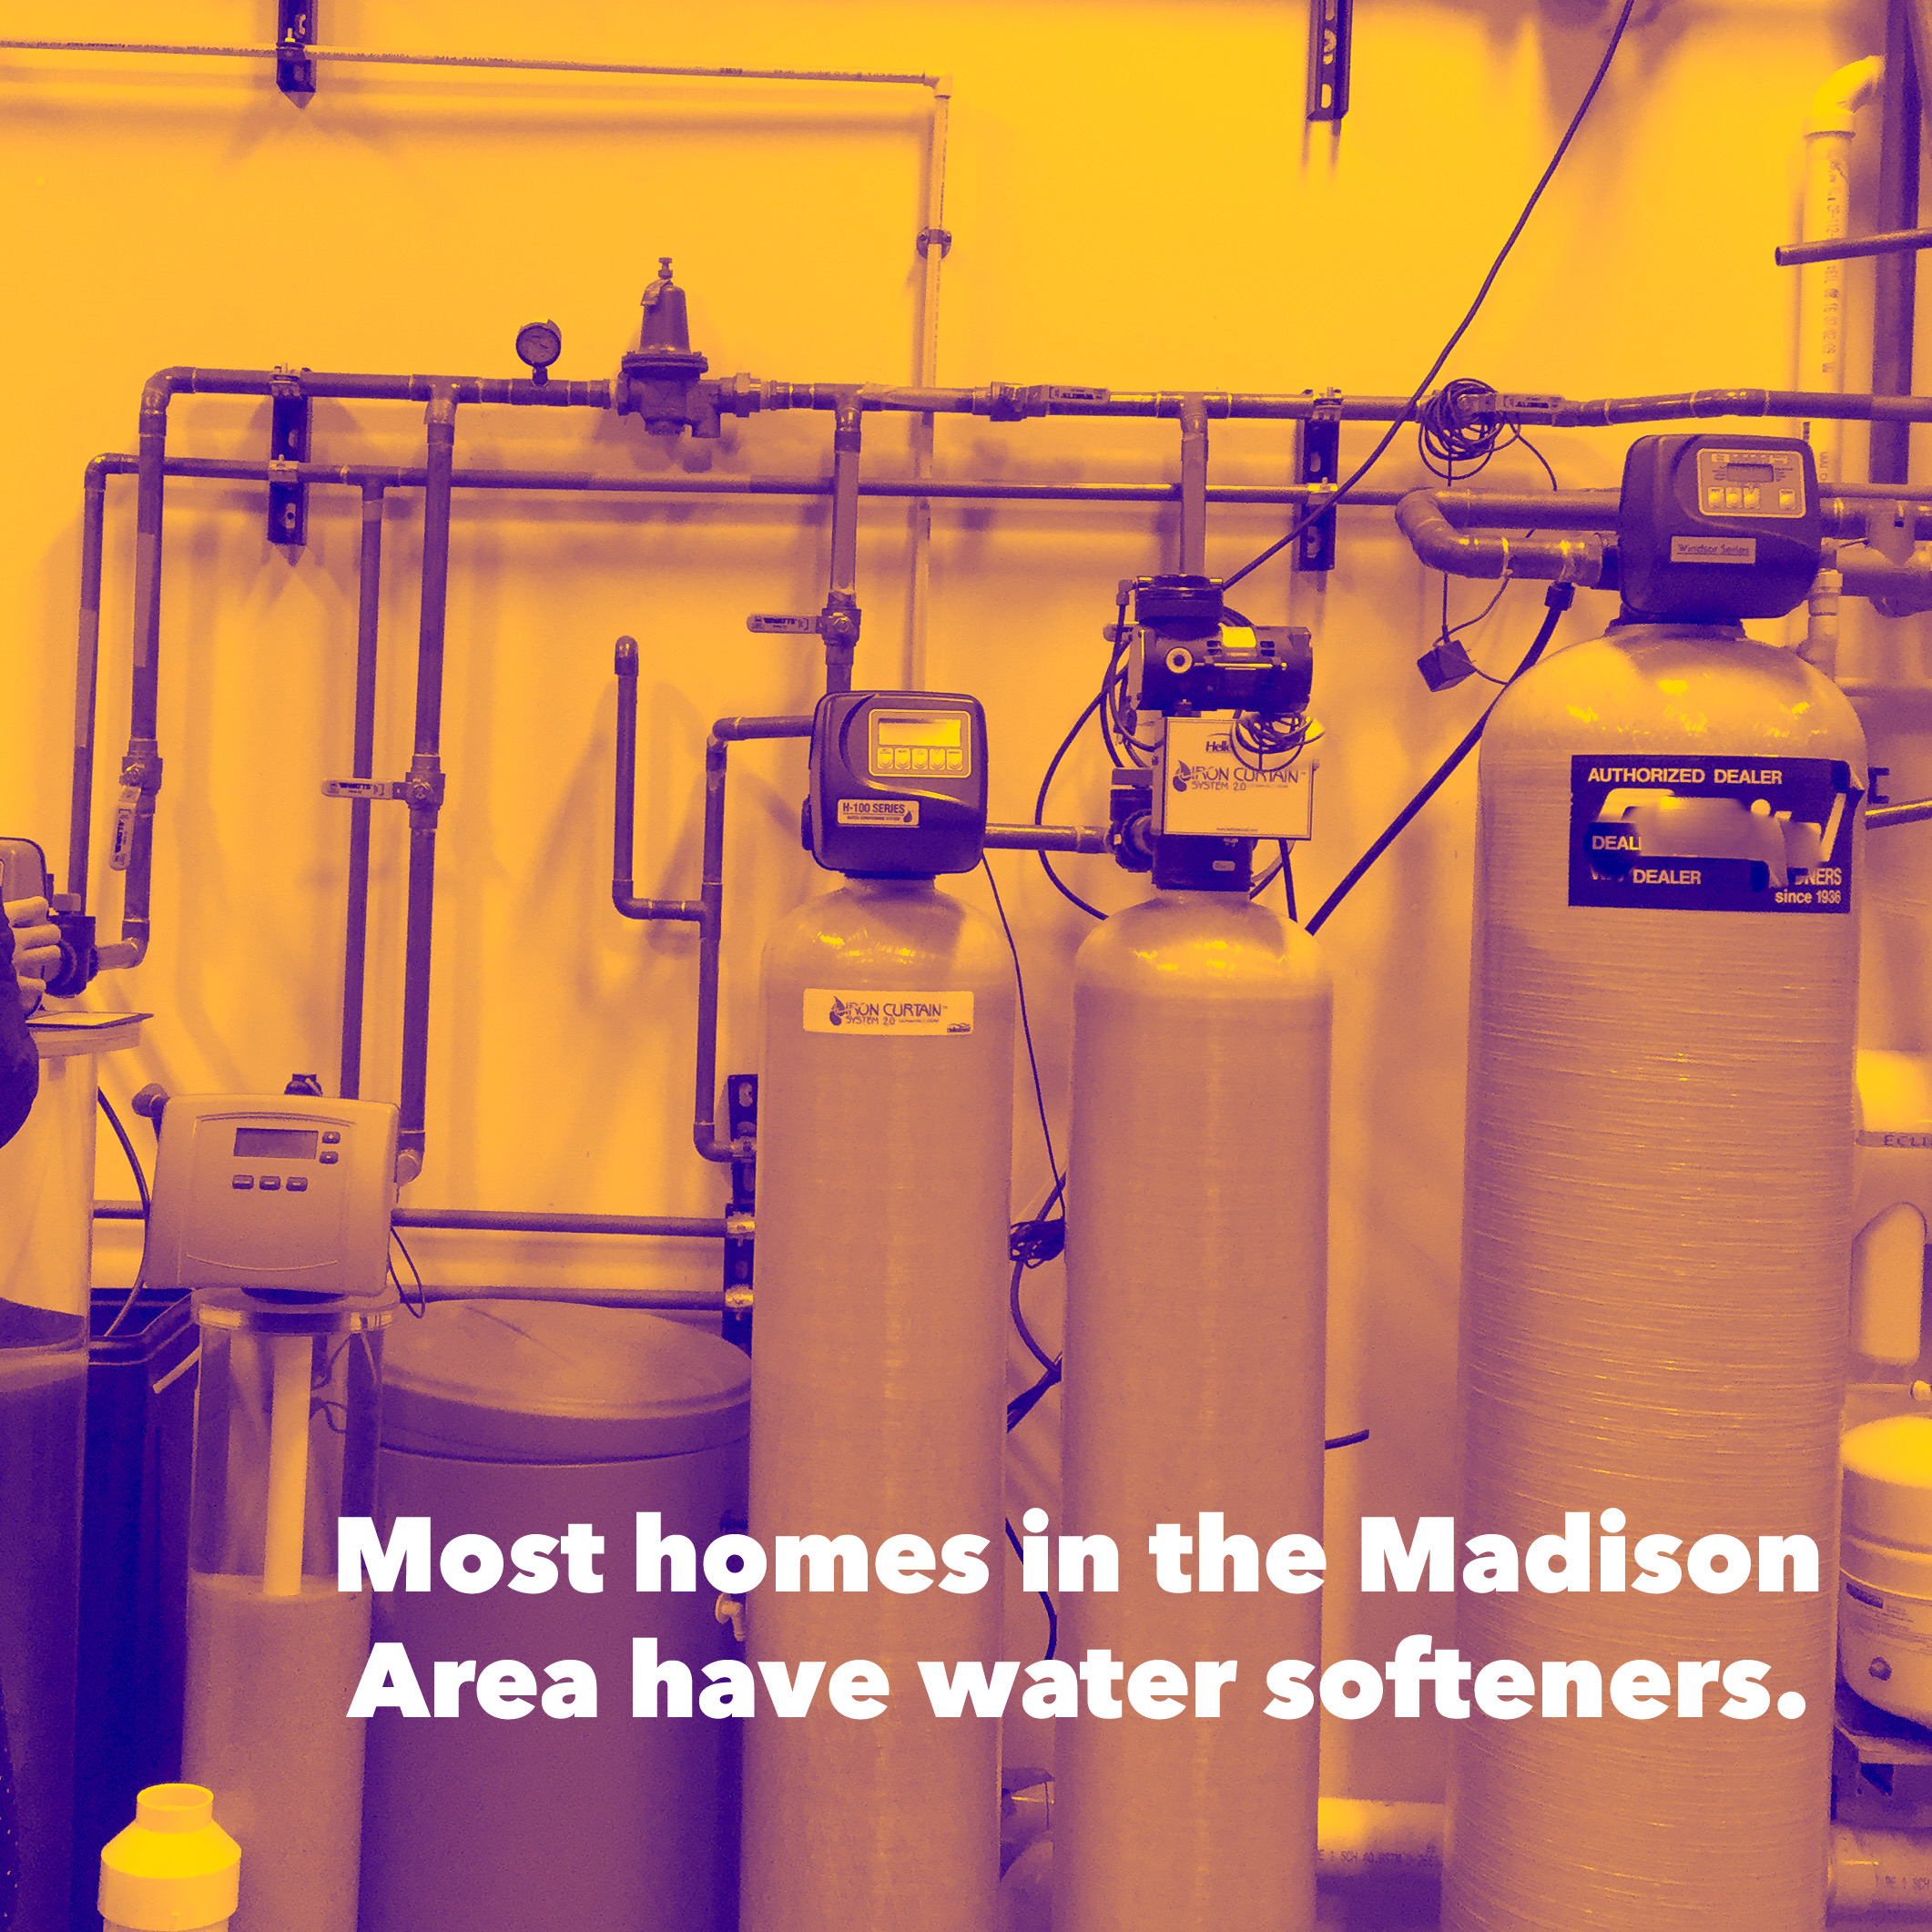 Most homes have water softeners